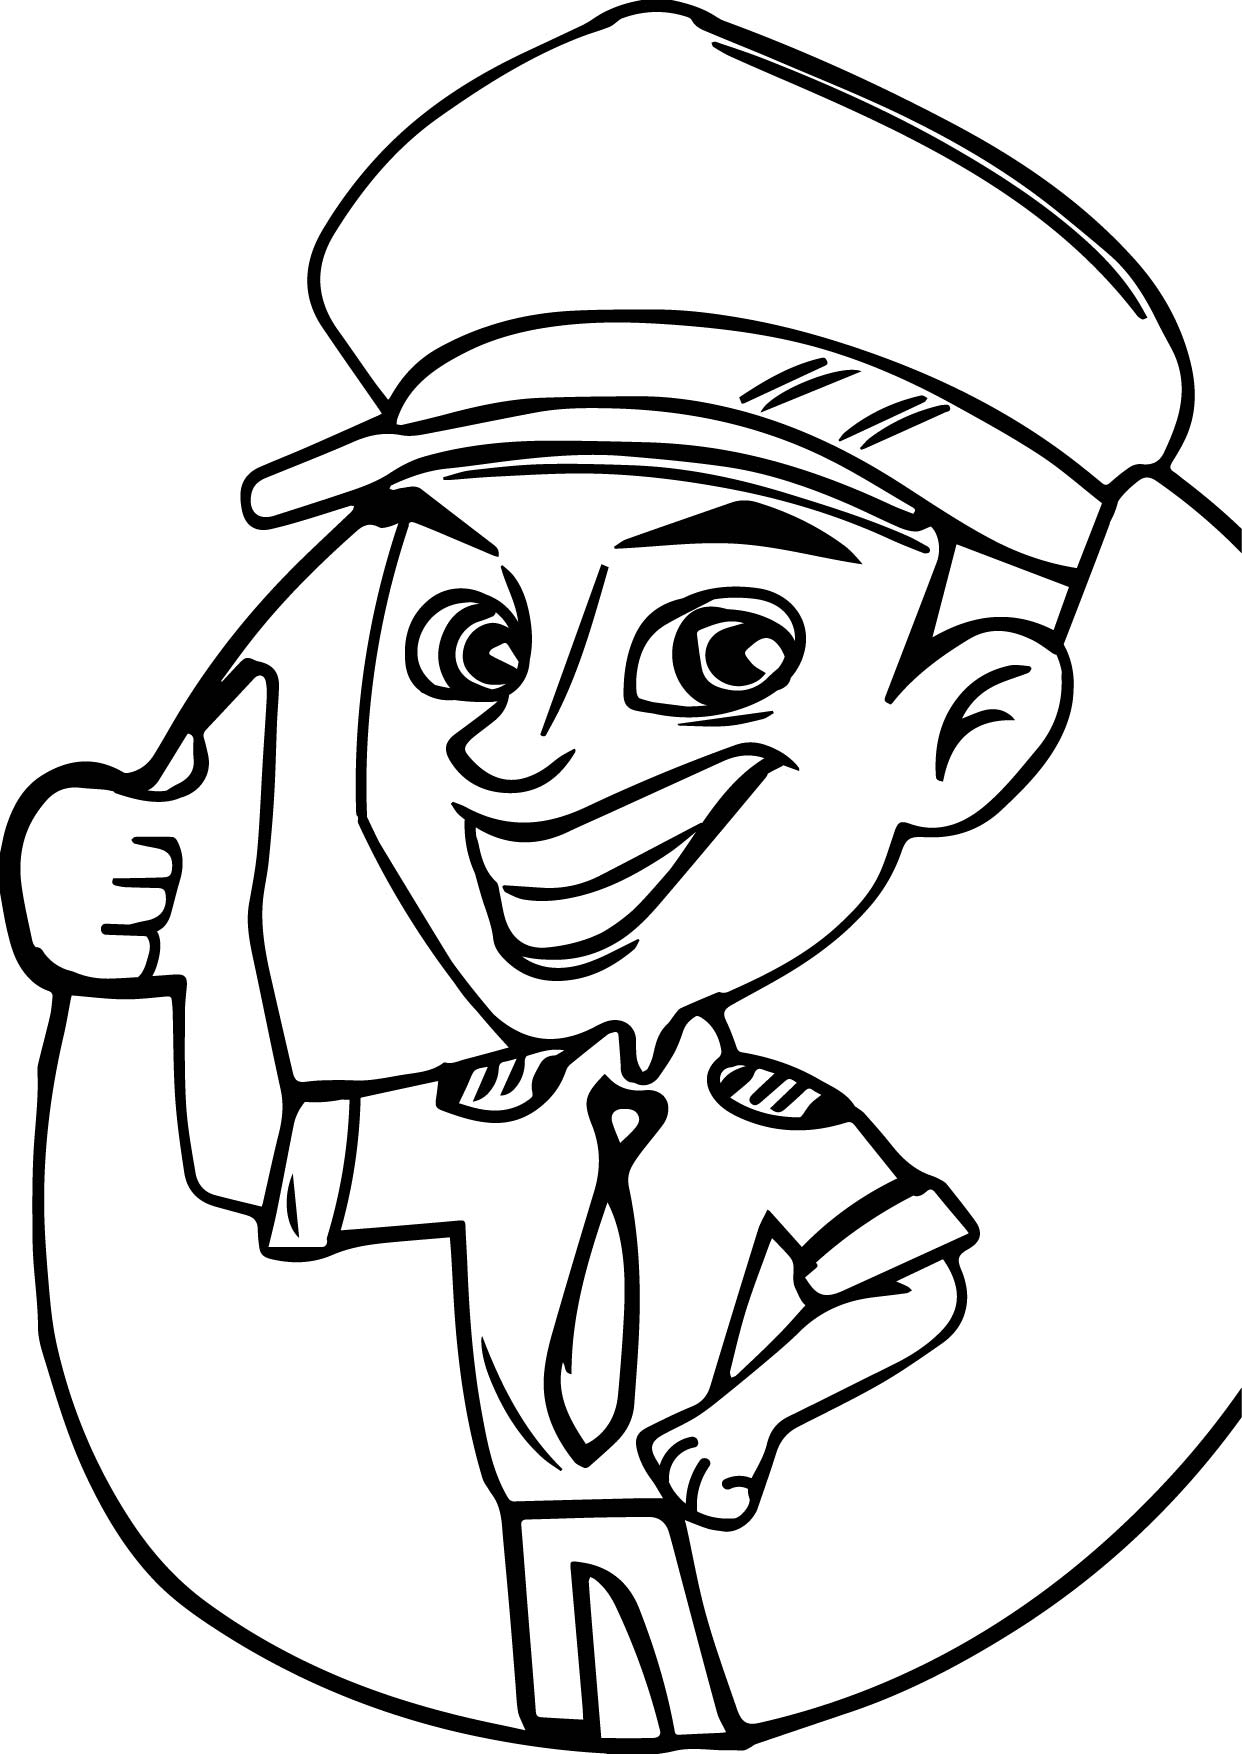 Pilot Everything Alright Coloring Page